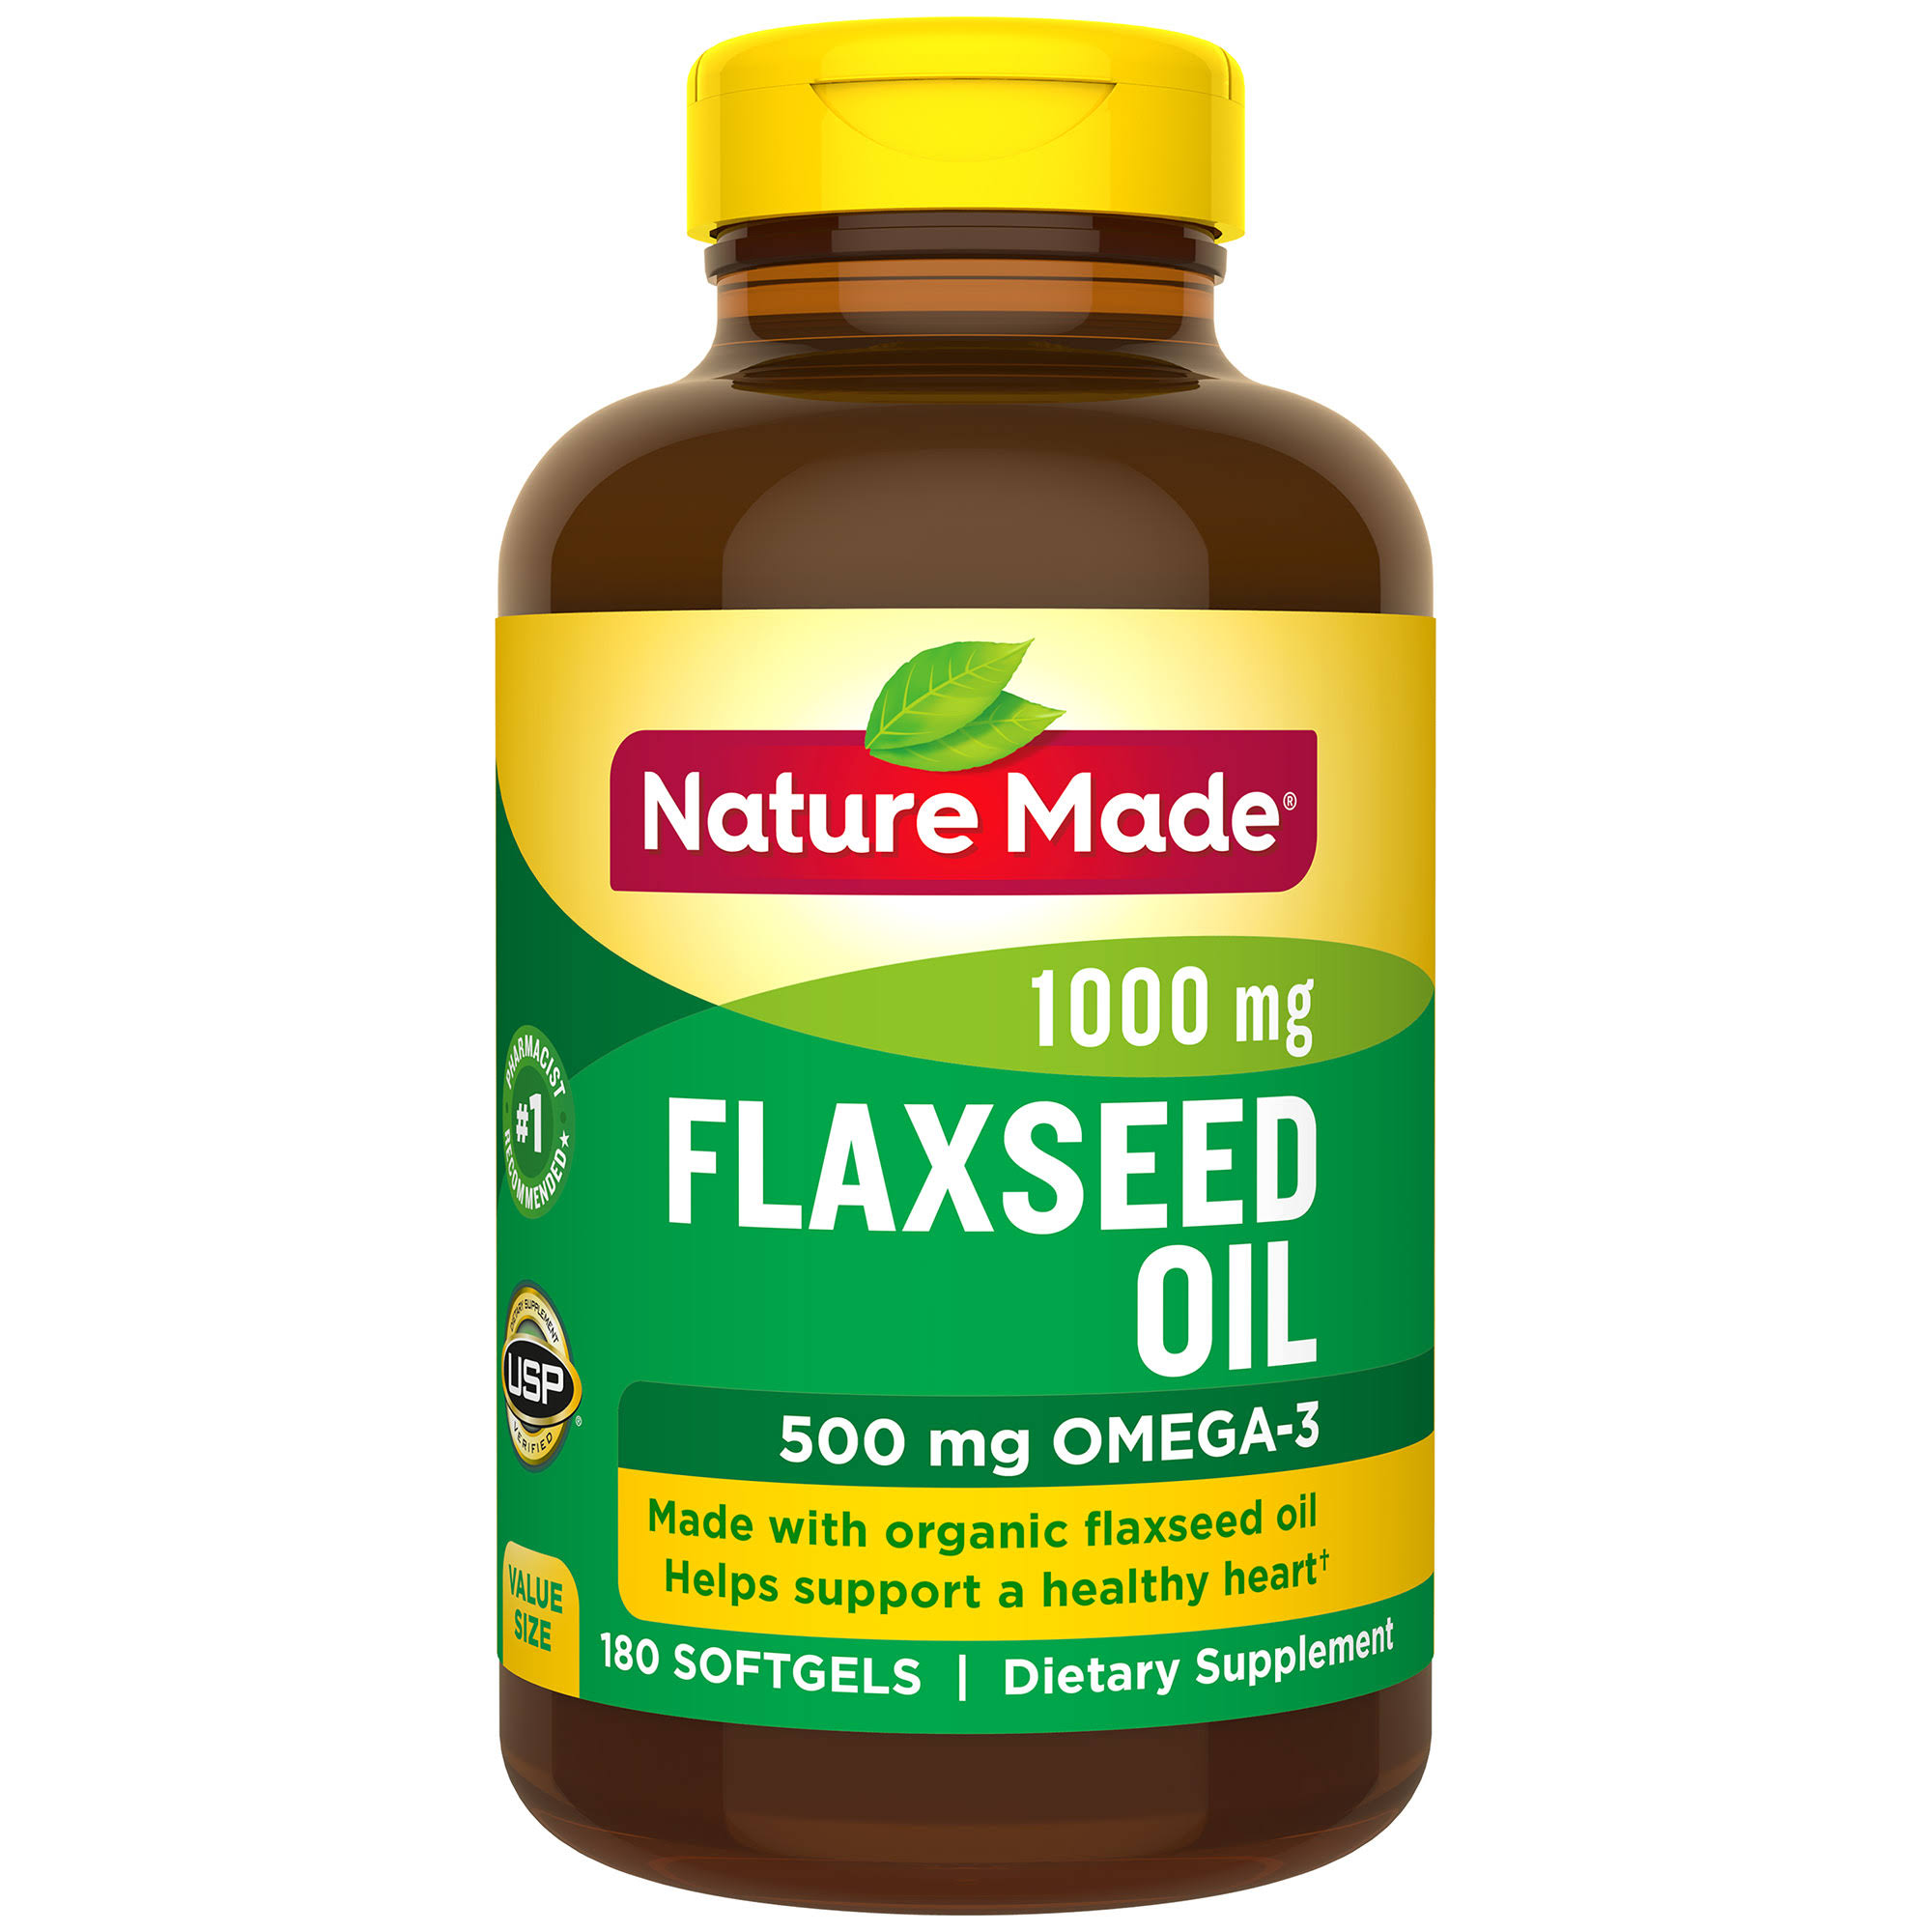 Nature Made Flaxseed Oil Dietary Supplement - 1000mg, 180ct